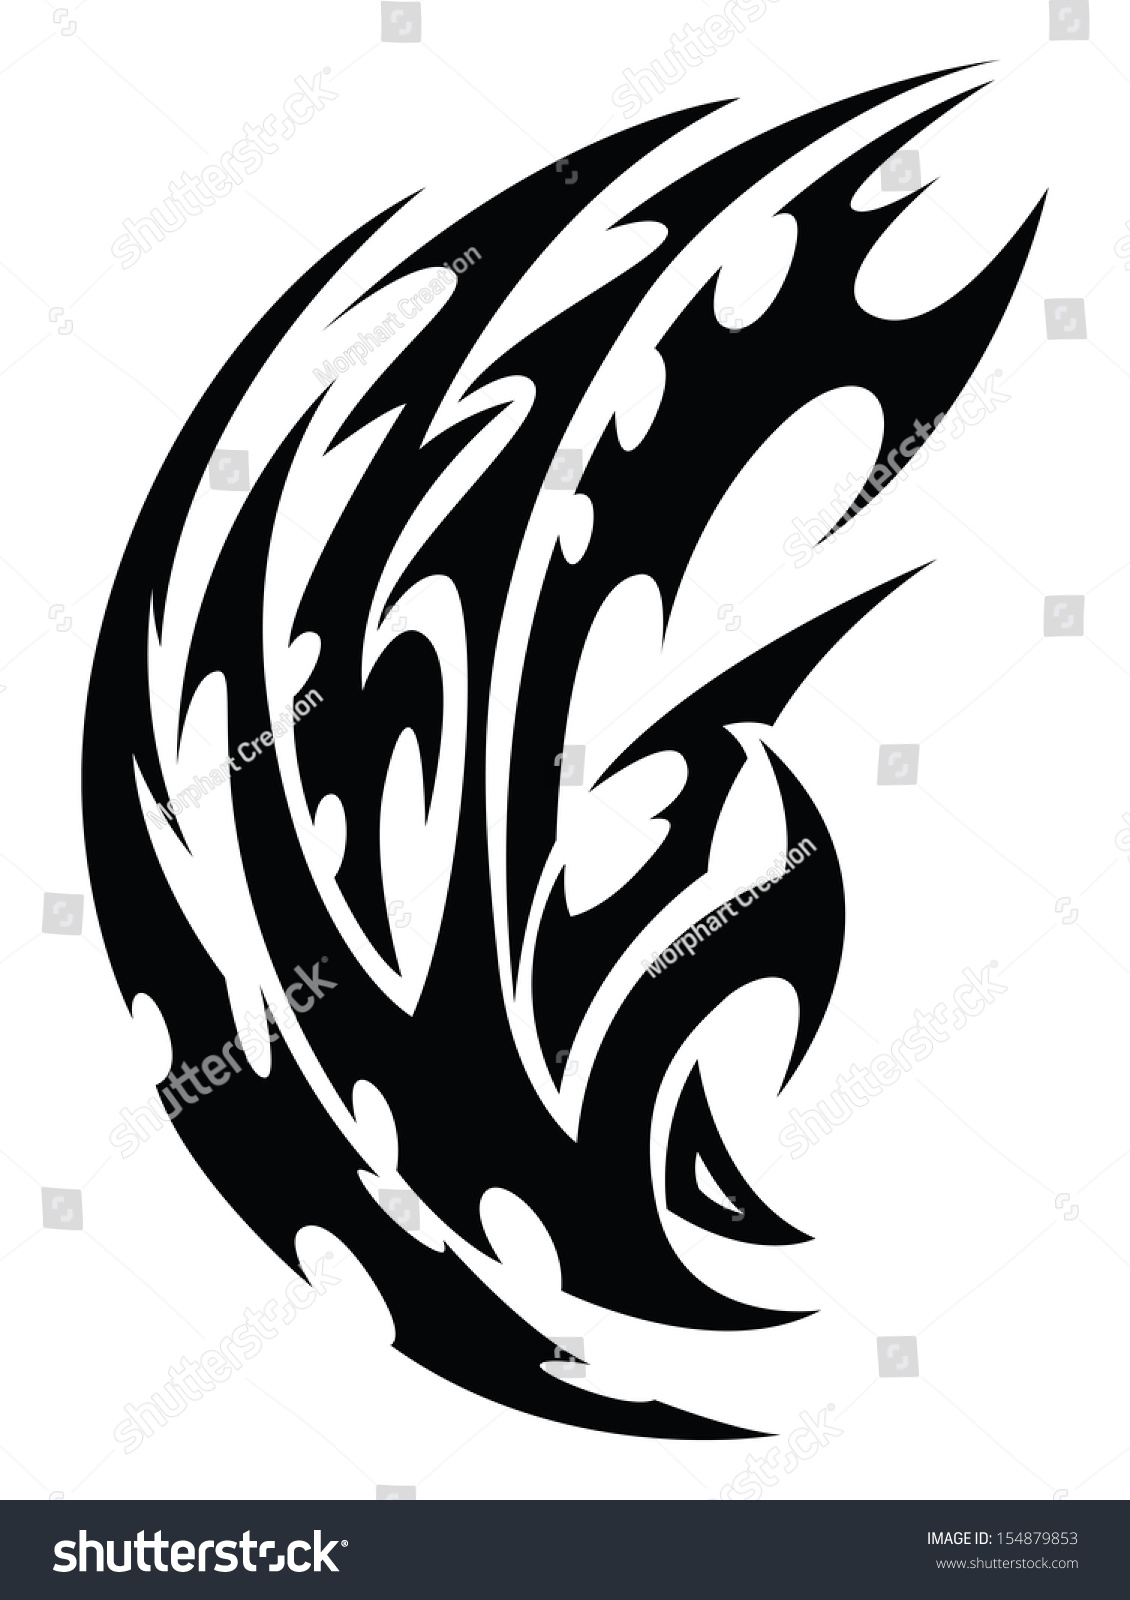 Abstract Tribal Tattoo Design Vintage Engraved Stock Ideas And Designs